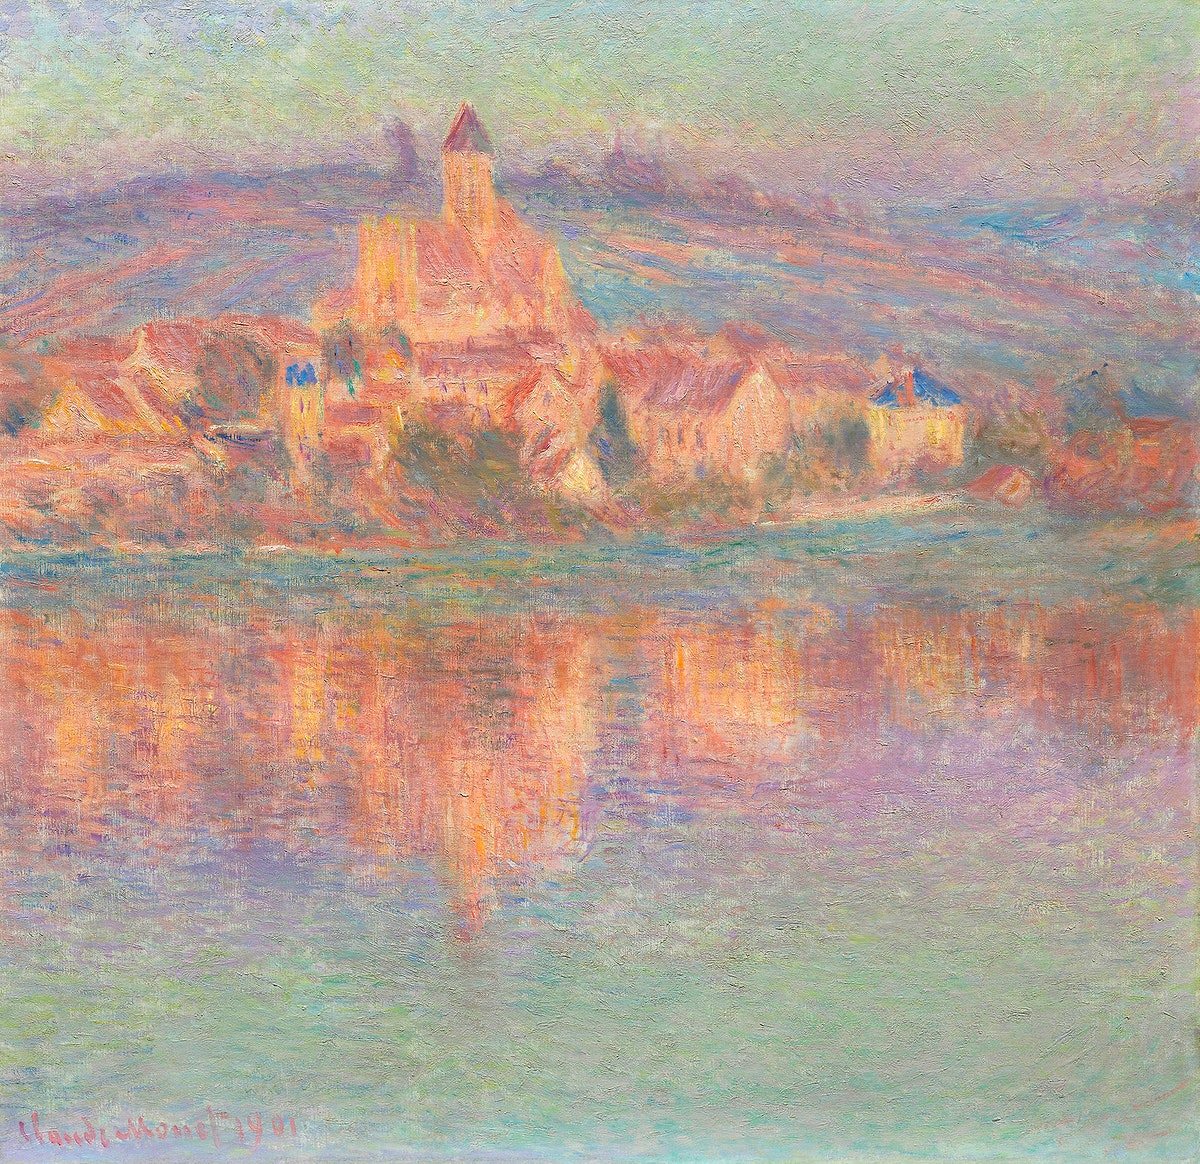 Vétheuil (1901) by Claude Monet. Original from the Art Institute of Chicago. Digitally enhanced by rawpixel.